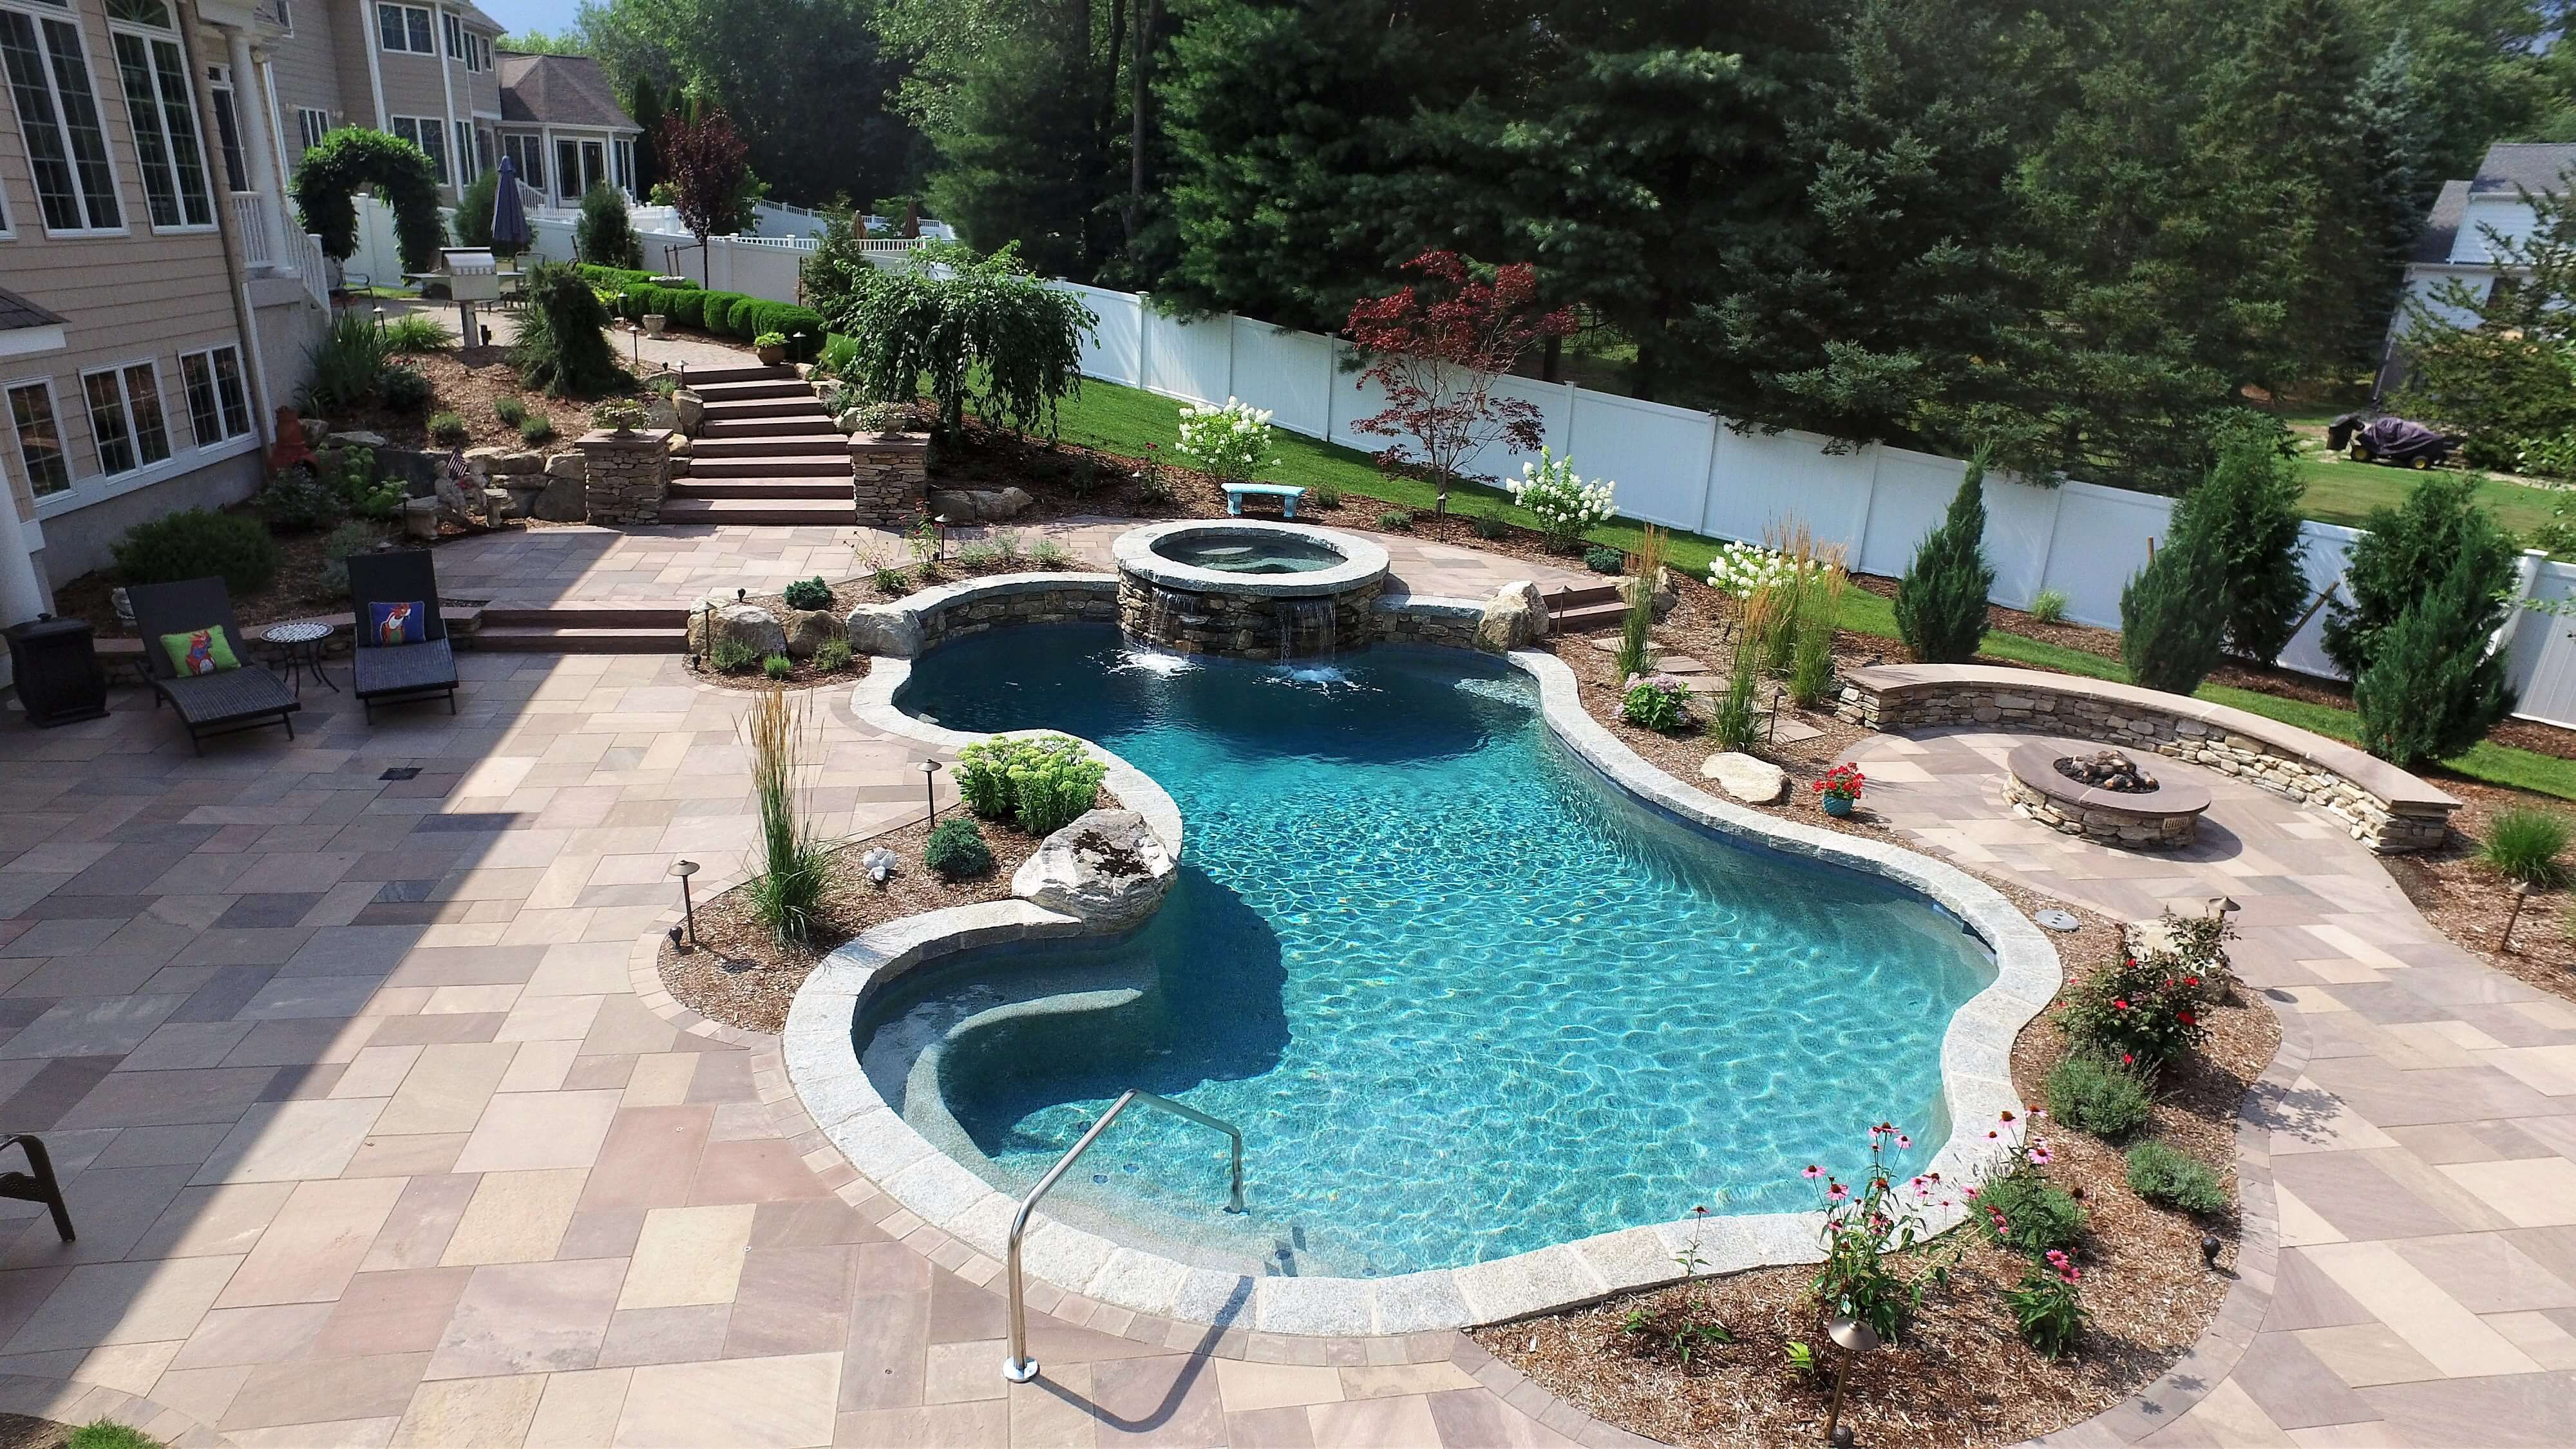 A Gunite Inground Pool Is The Premium Choice For Transforming Your Outdoor Living Space And Creating Amazing Family Memor Gunite Pool Cost Pool Cost Pool Patio